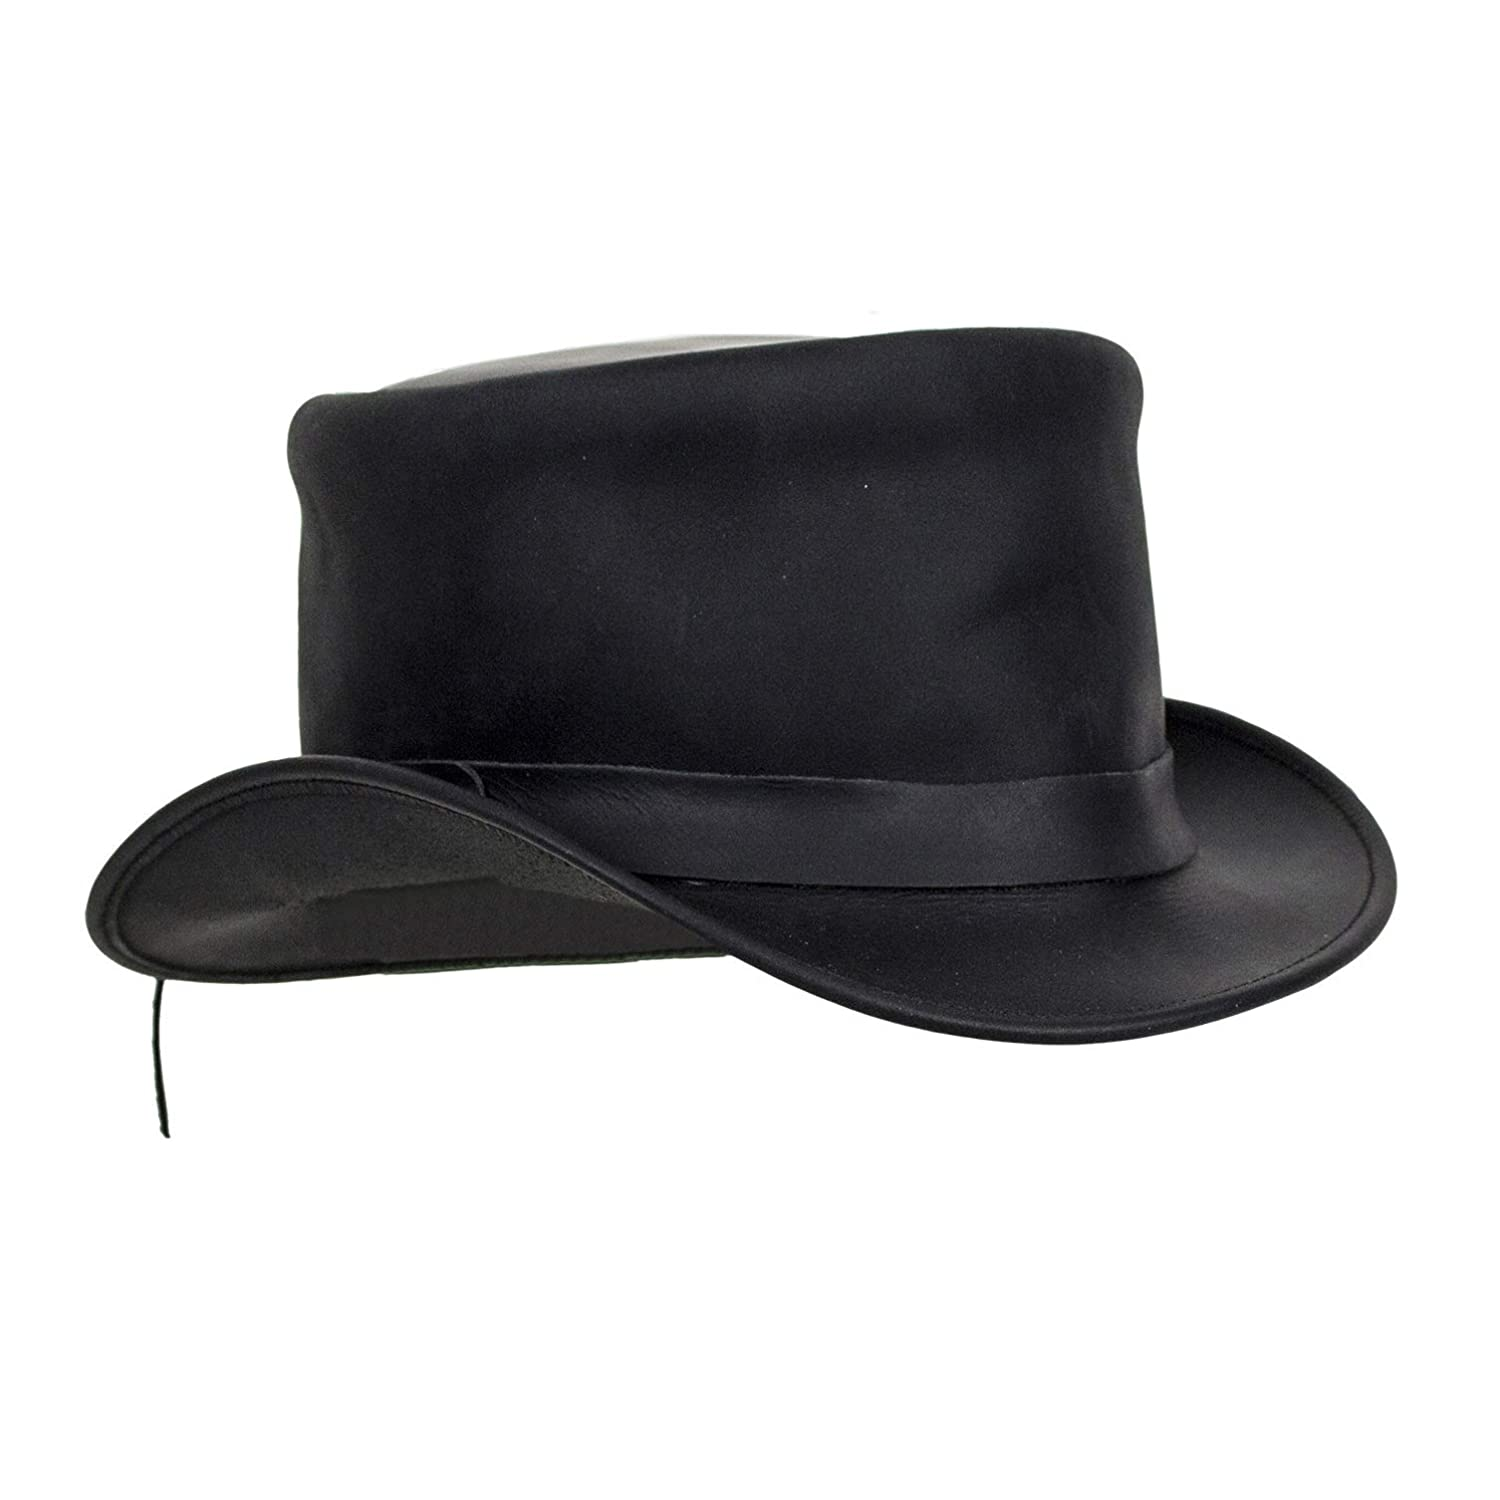 Victorian Men's Hats- Top Hats, Bowler, Gambler Black Leather Deadman Top Hat $69.00 AT vintagedancer.com